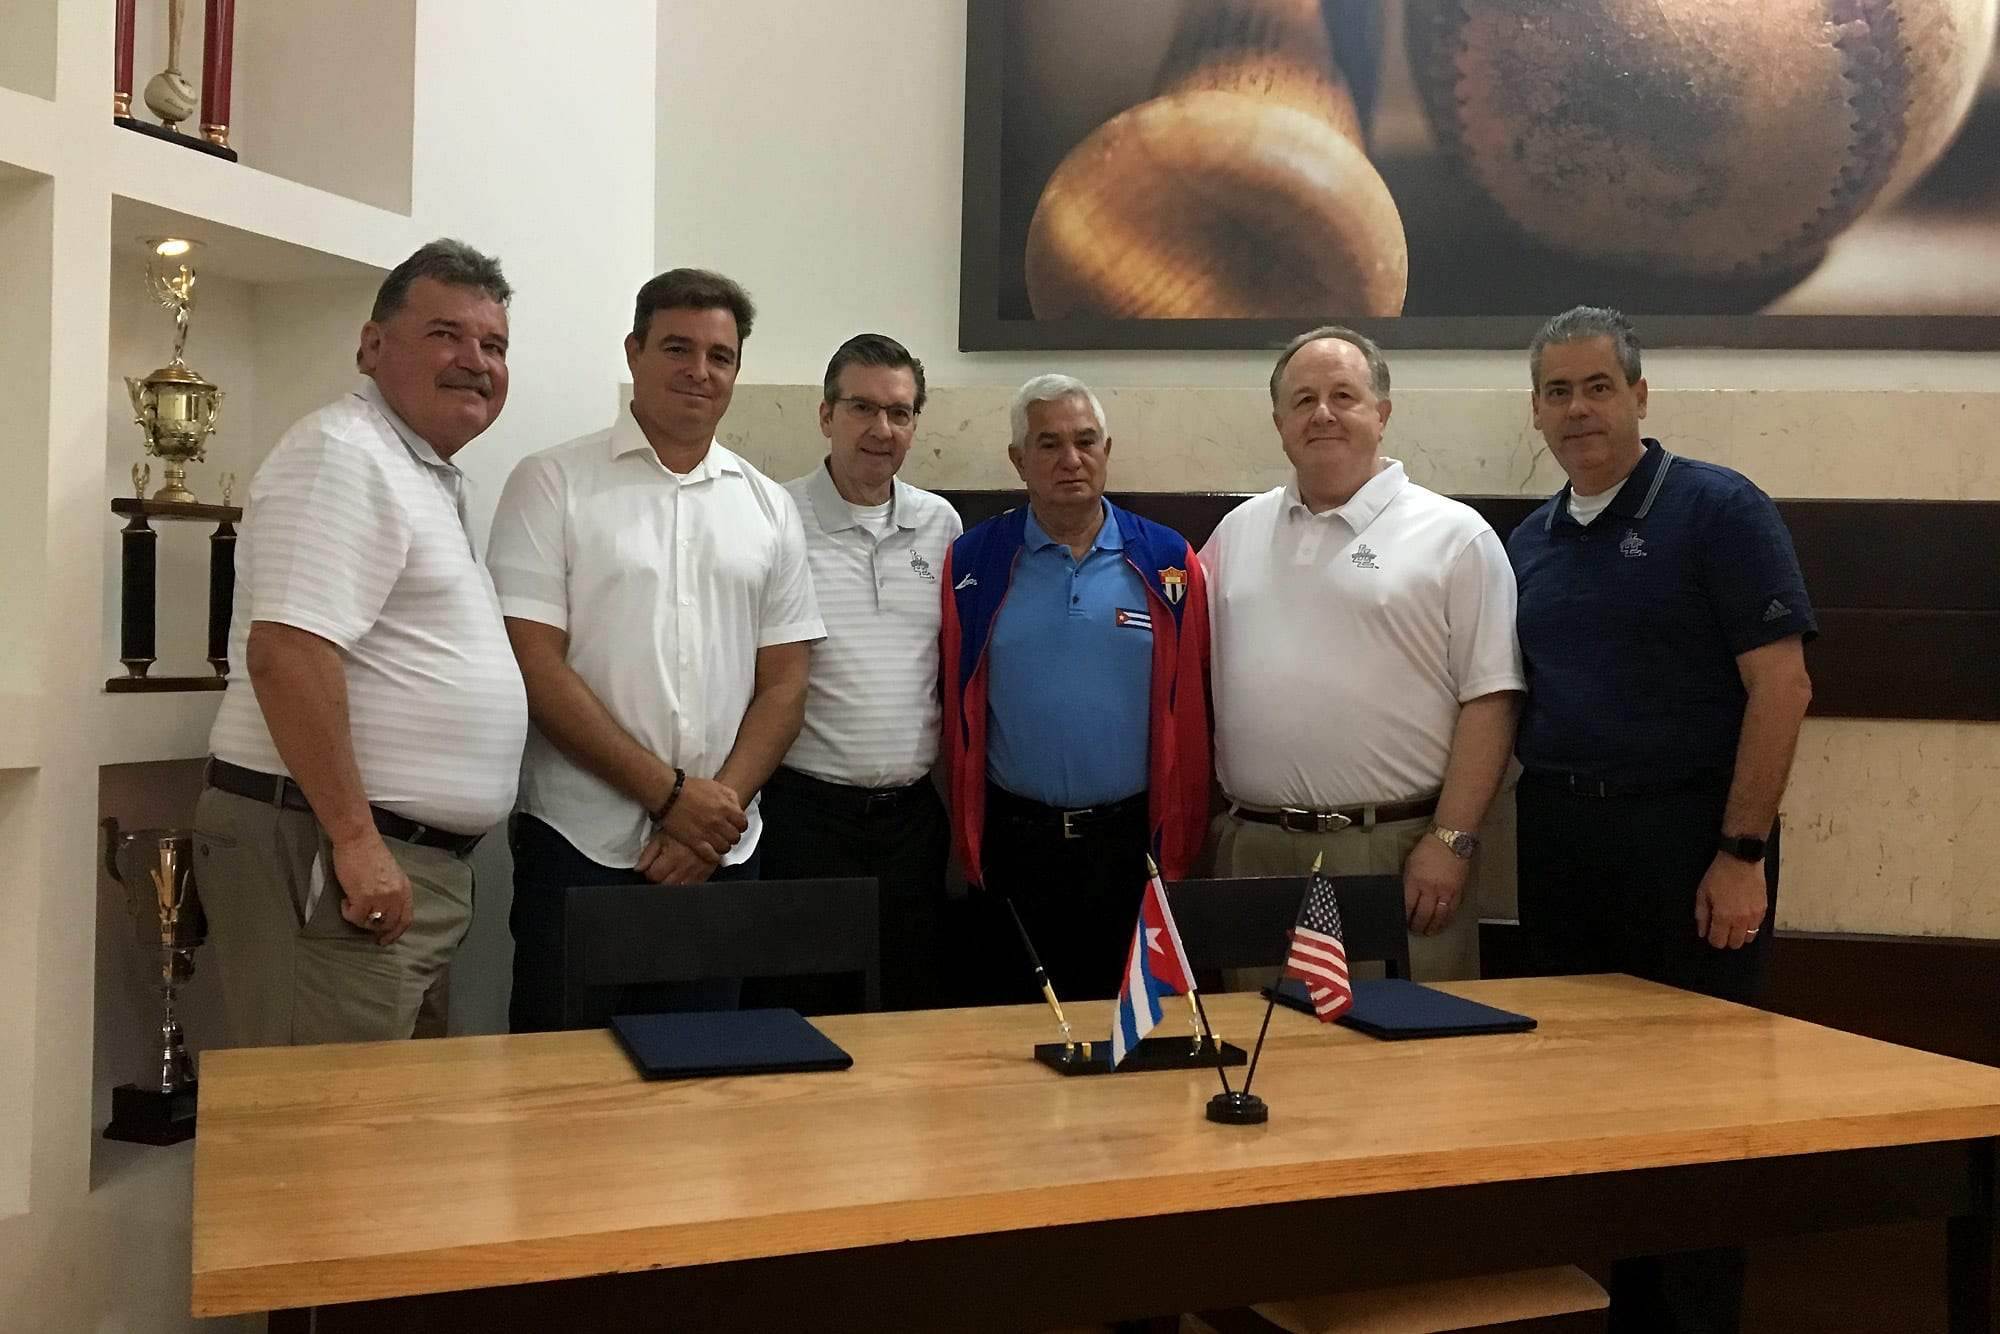 Cuba Meeting Group